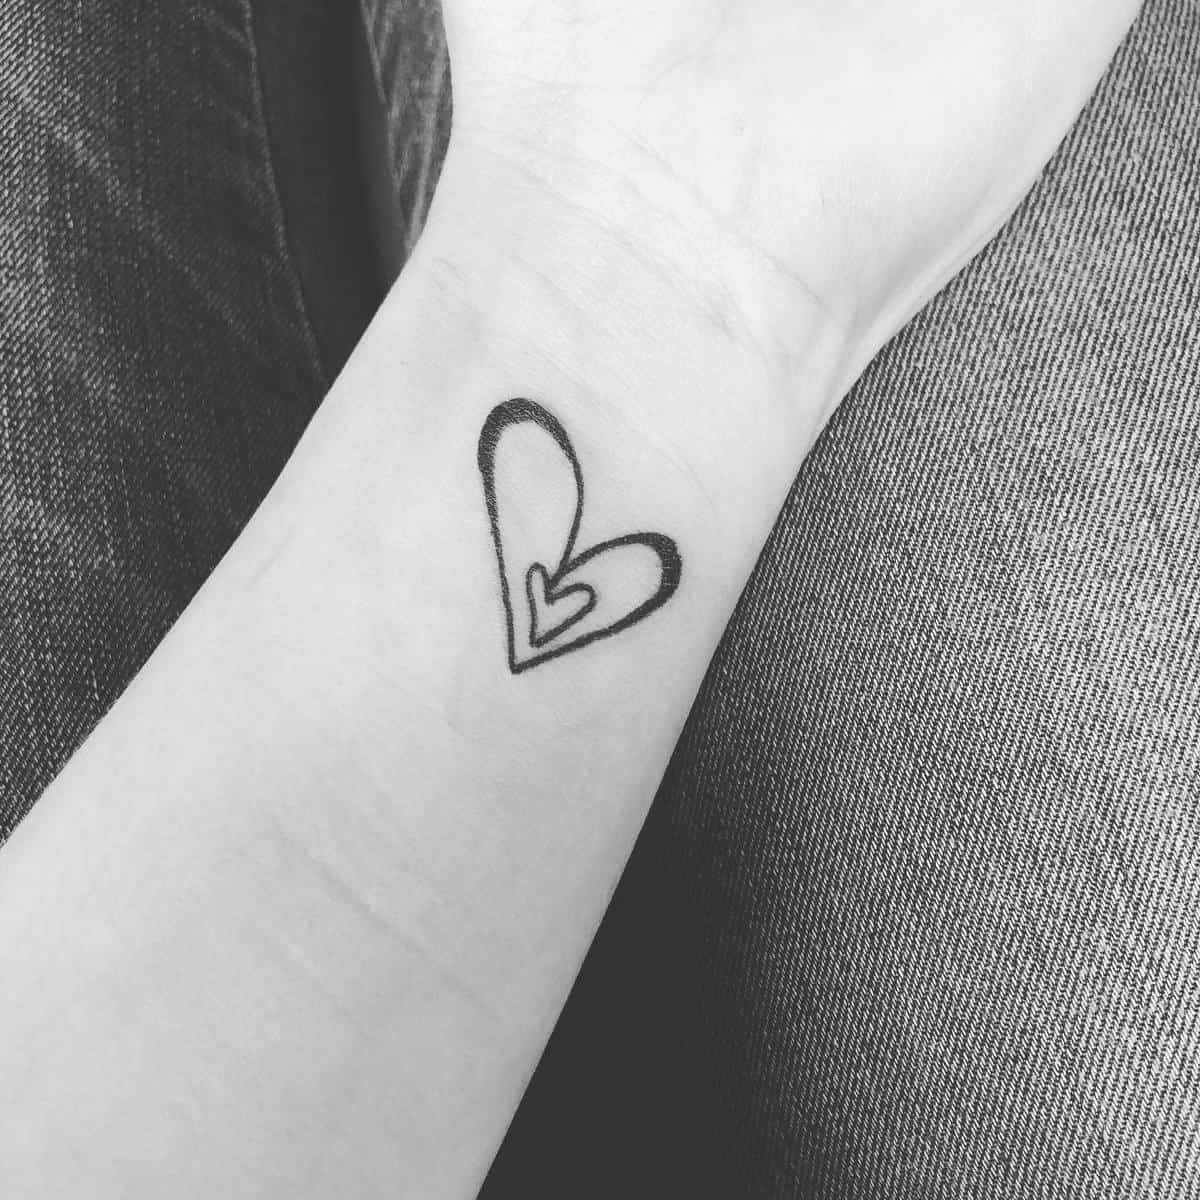 Wrist Miscarriage Tattoos -mrs.caitlyn_oneil